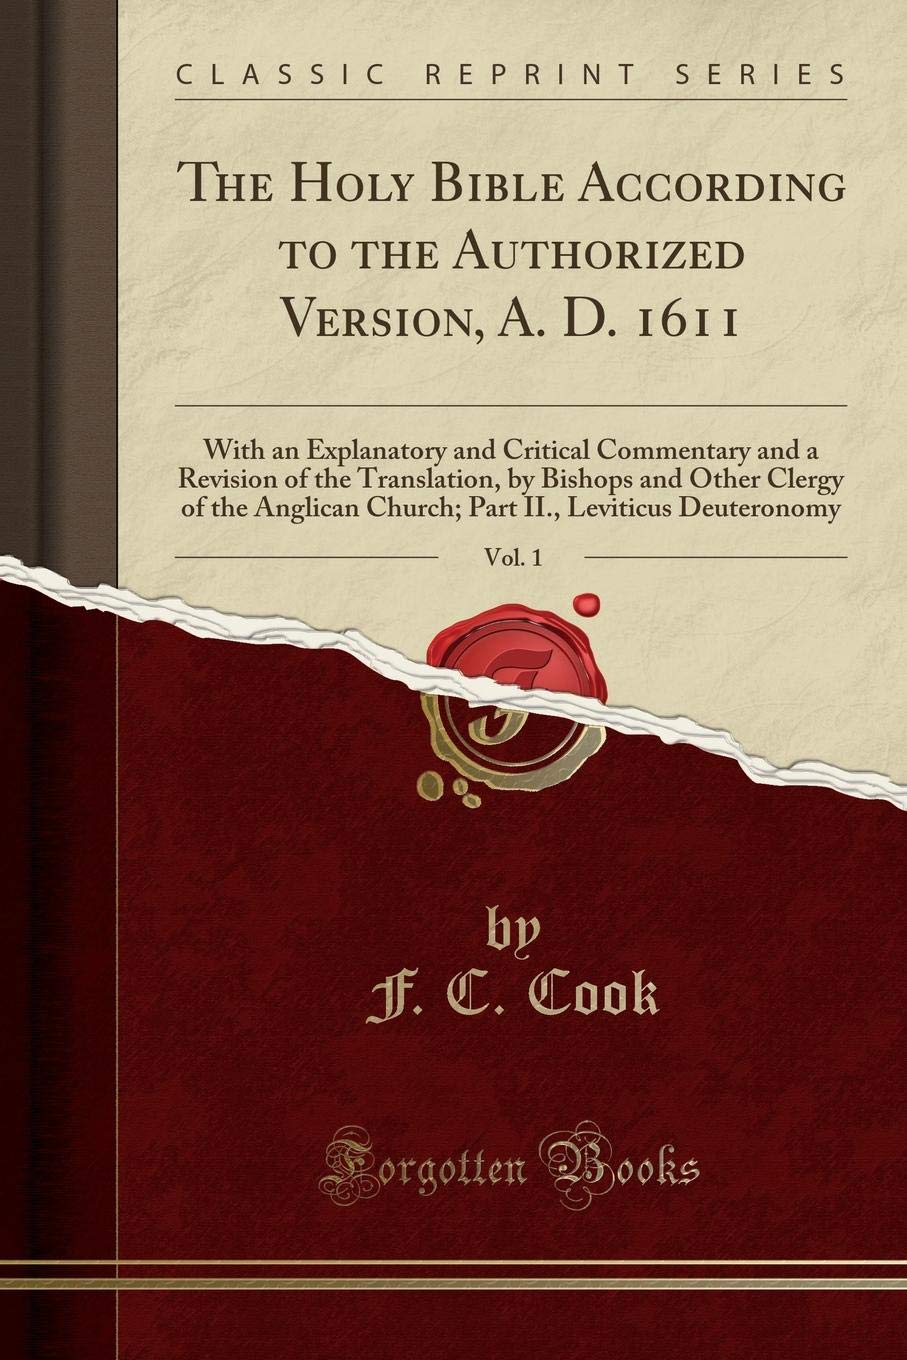 The Holy Bible According to the Authorized Version, A. D. 1611, Vol. 1: With an Explanatory and Critical Commentary and a Revision of the Translation, ... II., Leviticus Deuteronomy (Classic Reprint) ebook